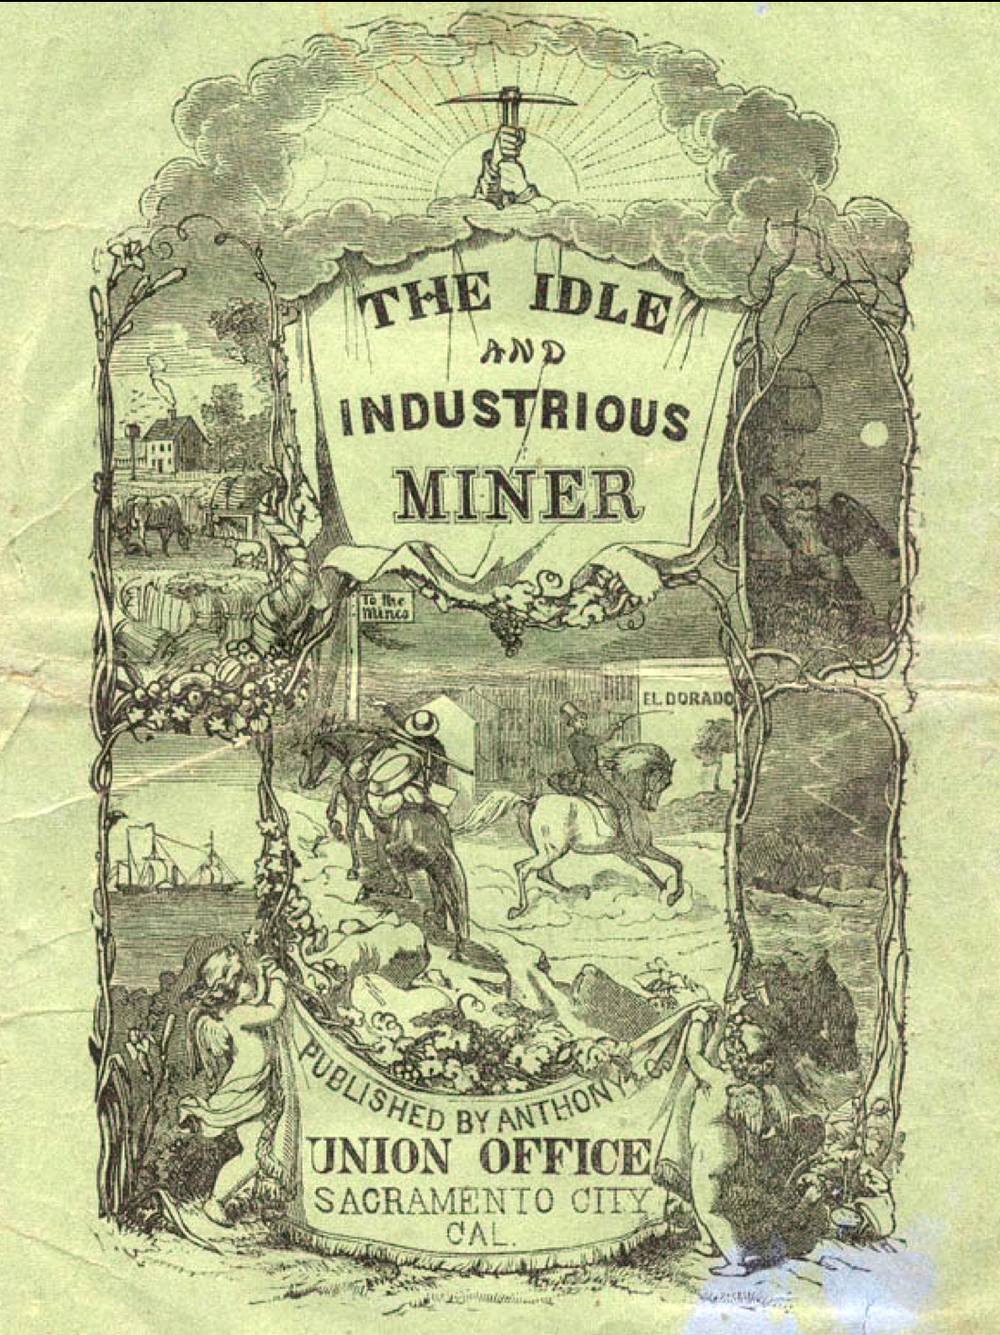 Nahl Idle and Industrious Miner Cover.jpg